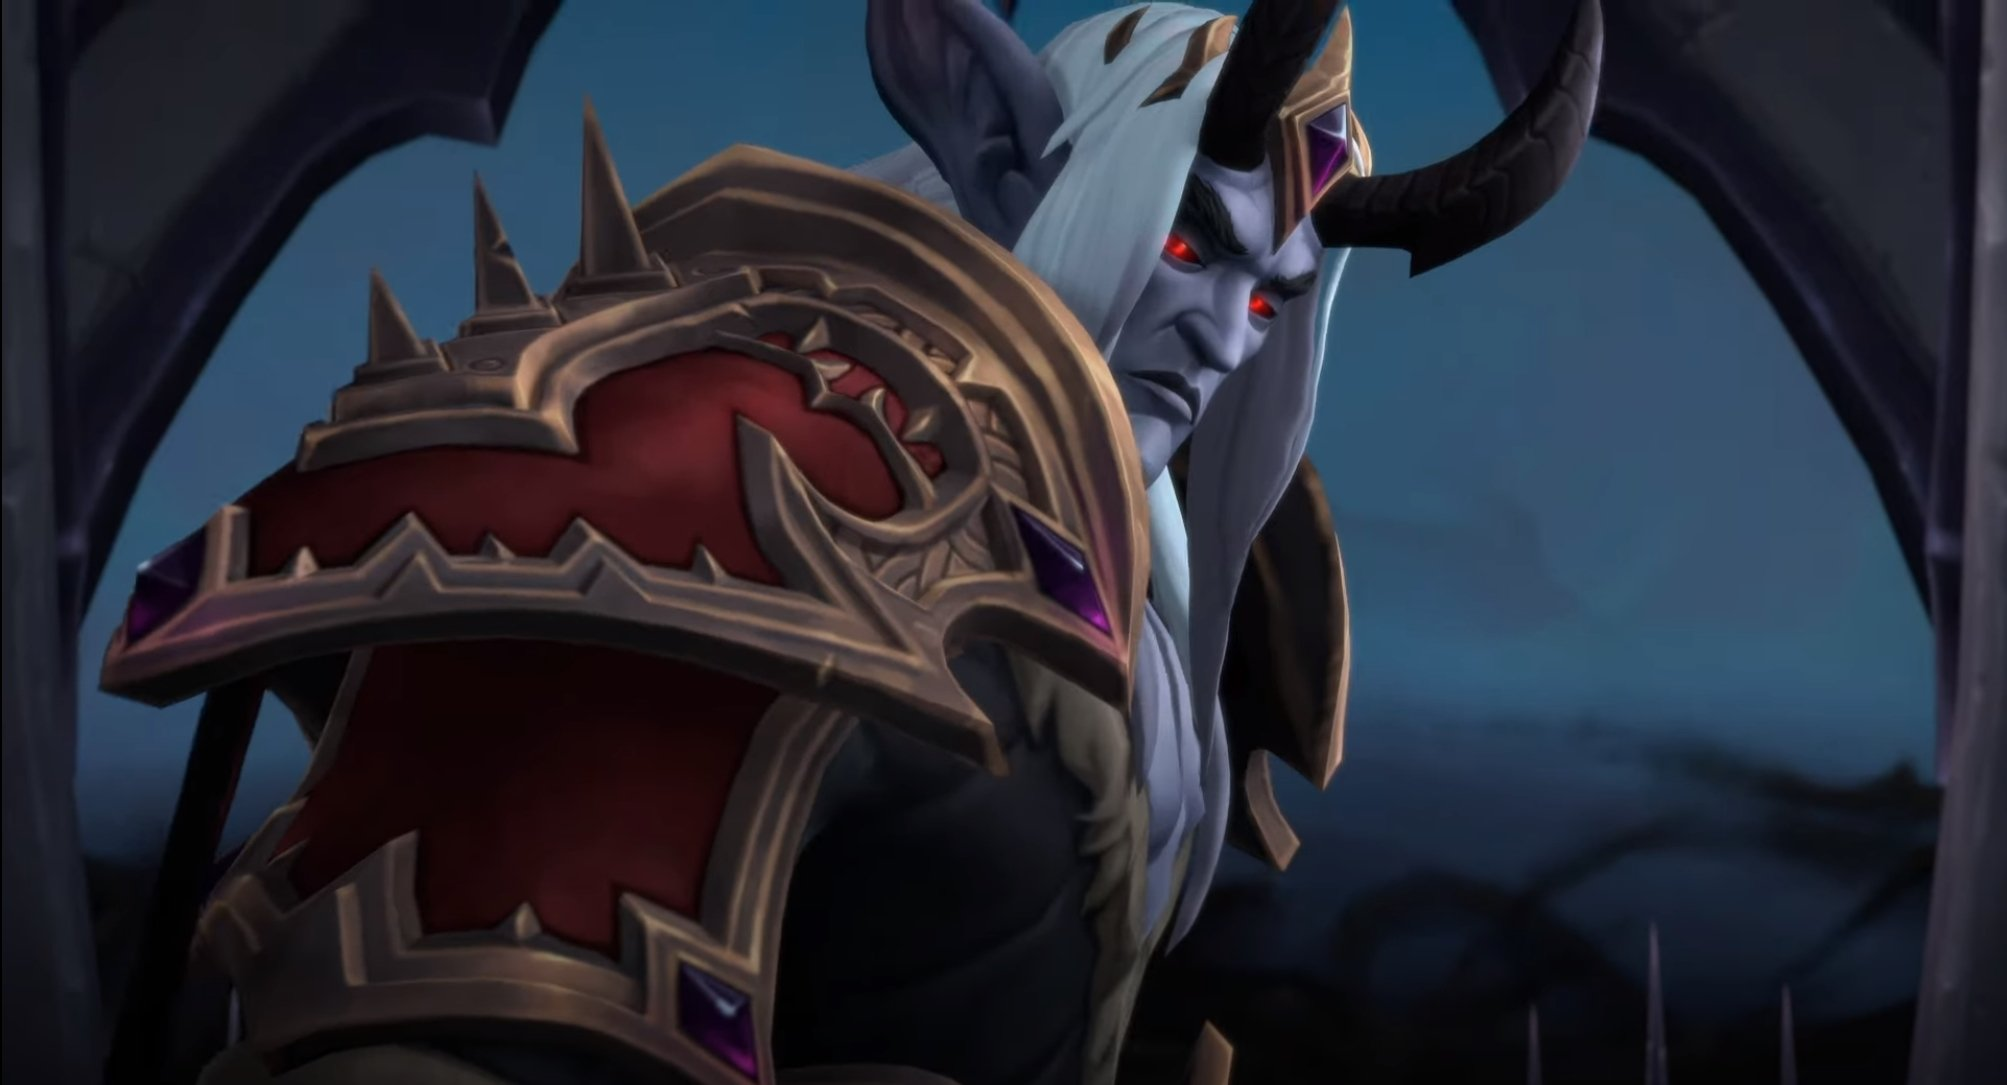 Blizzard's Mythic Castle Nathria Difficulty Release Date In World Of Warcraft: Shadowlands Concerns Some Players